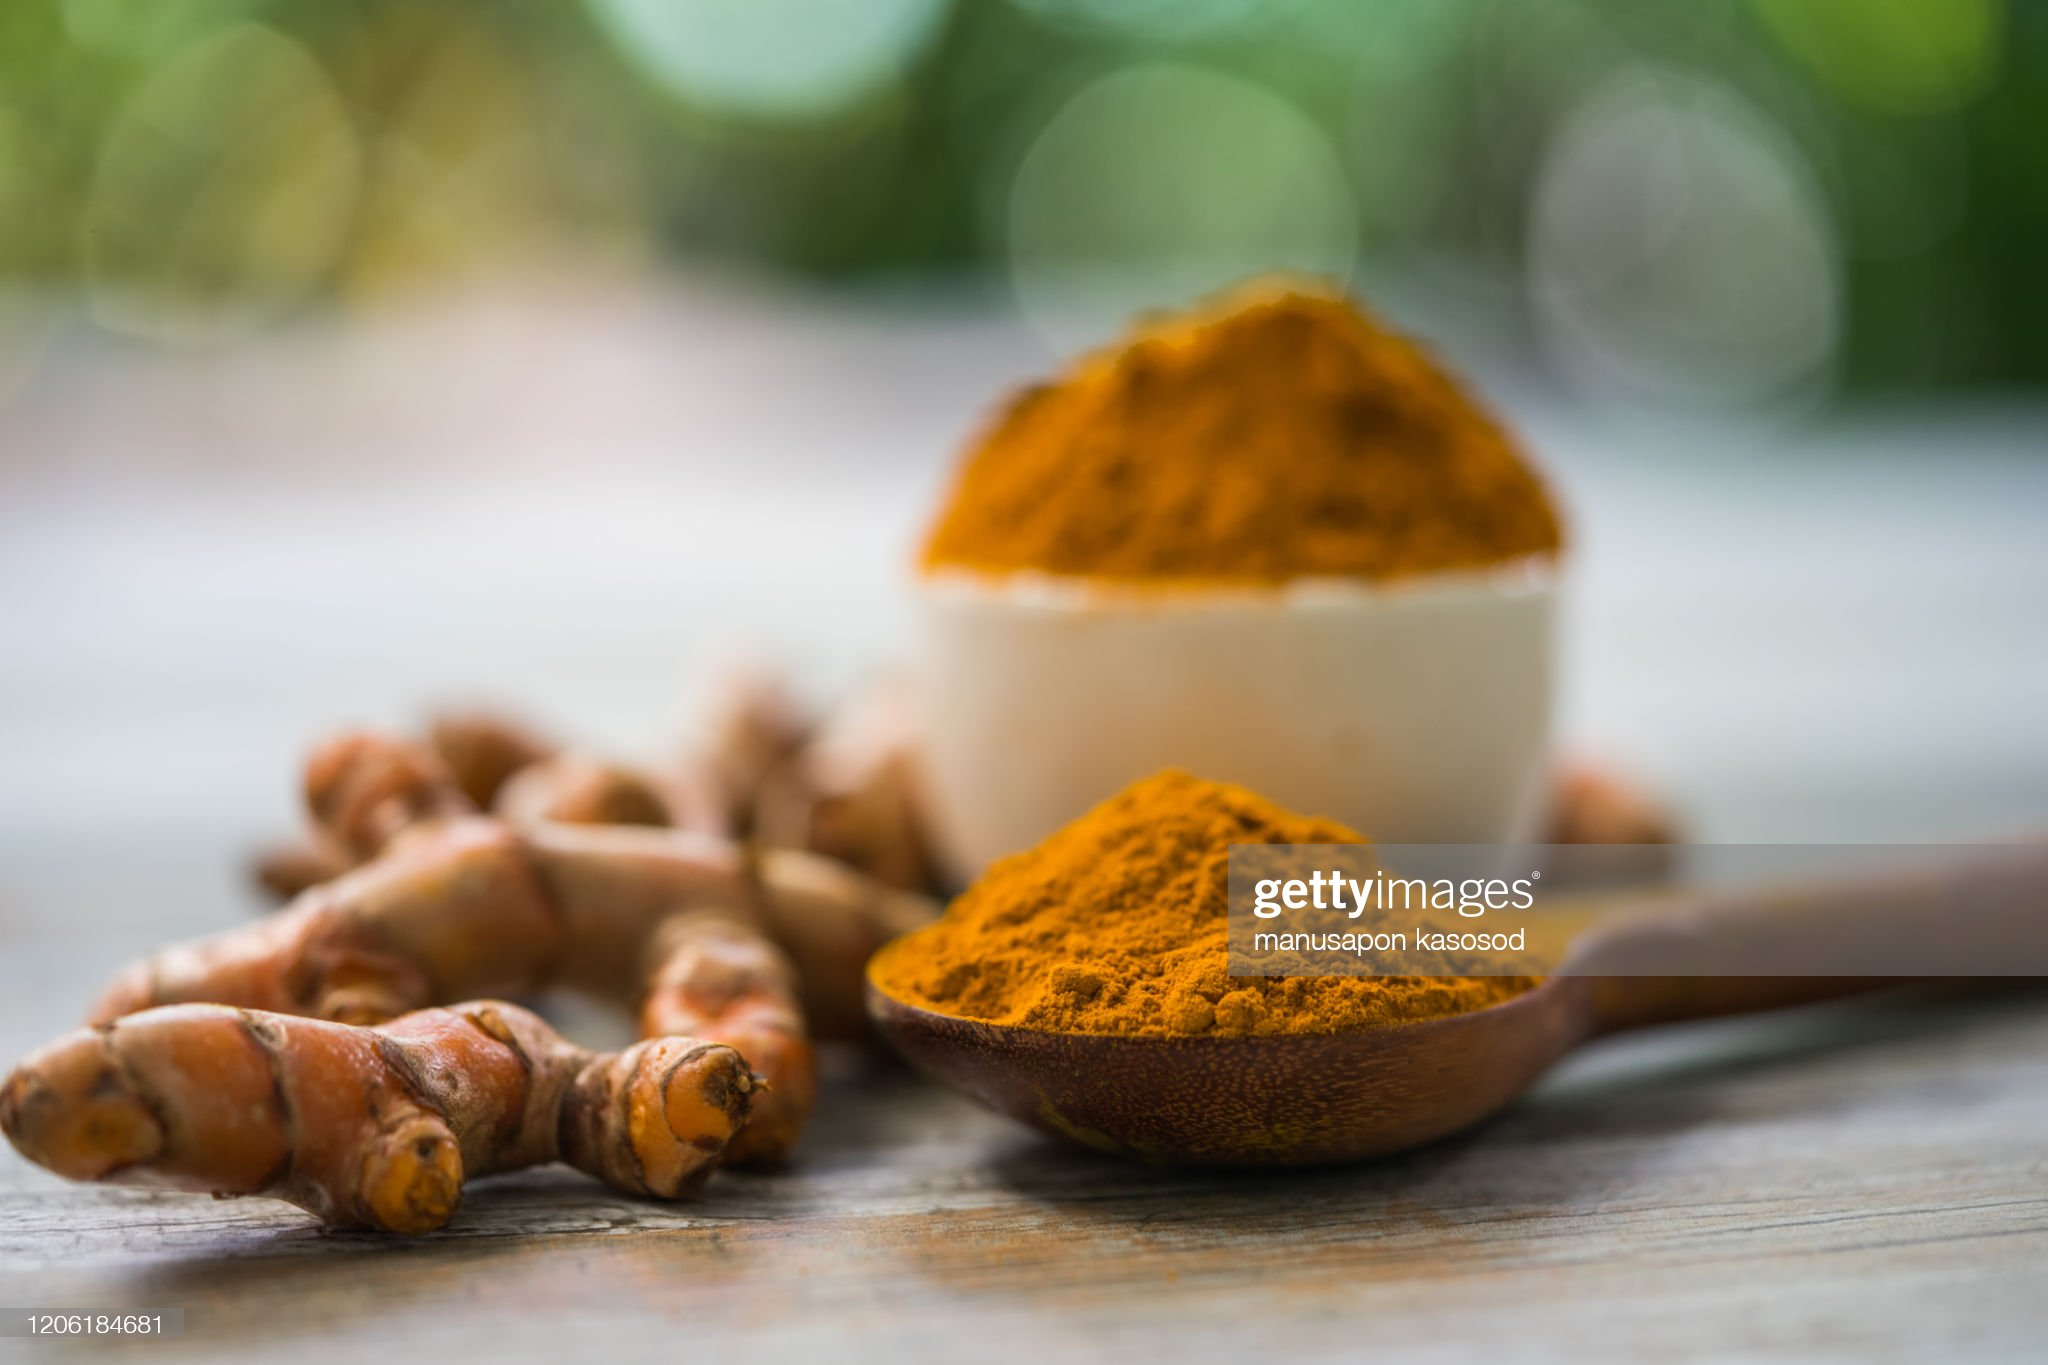 Turmeric powder and fresh turmeric in wood bowls on wooden table. : Stock Photo